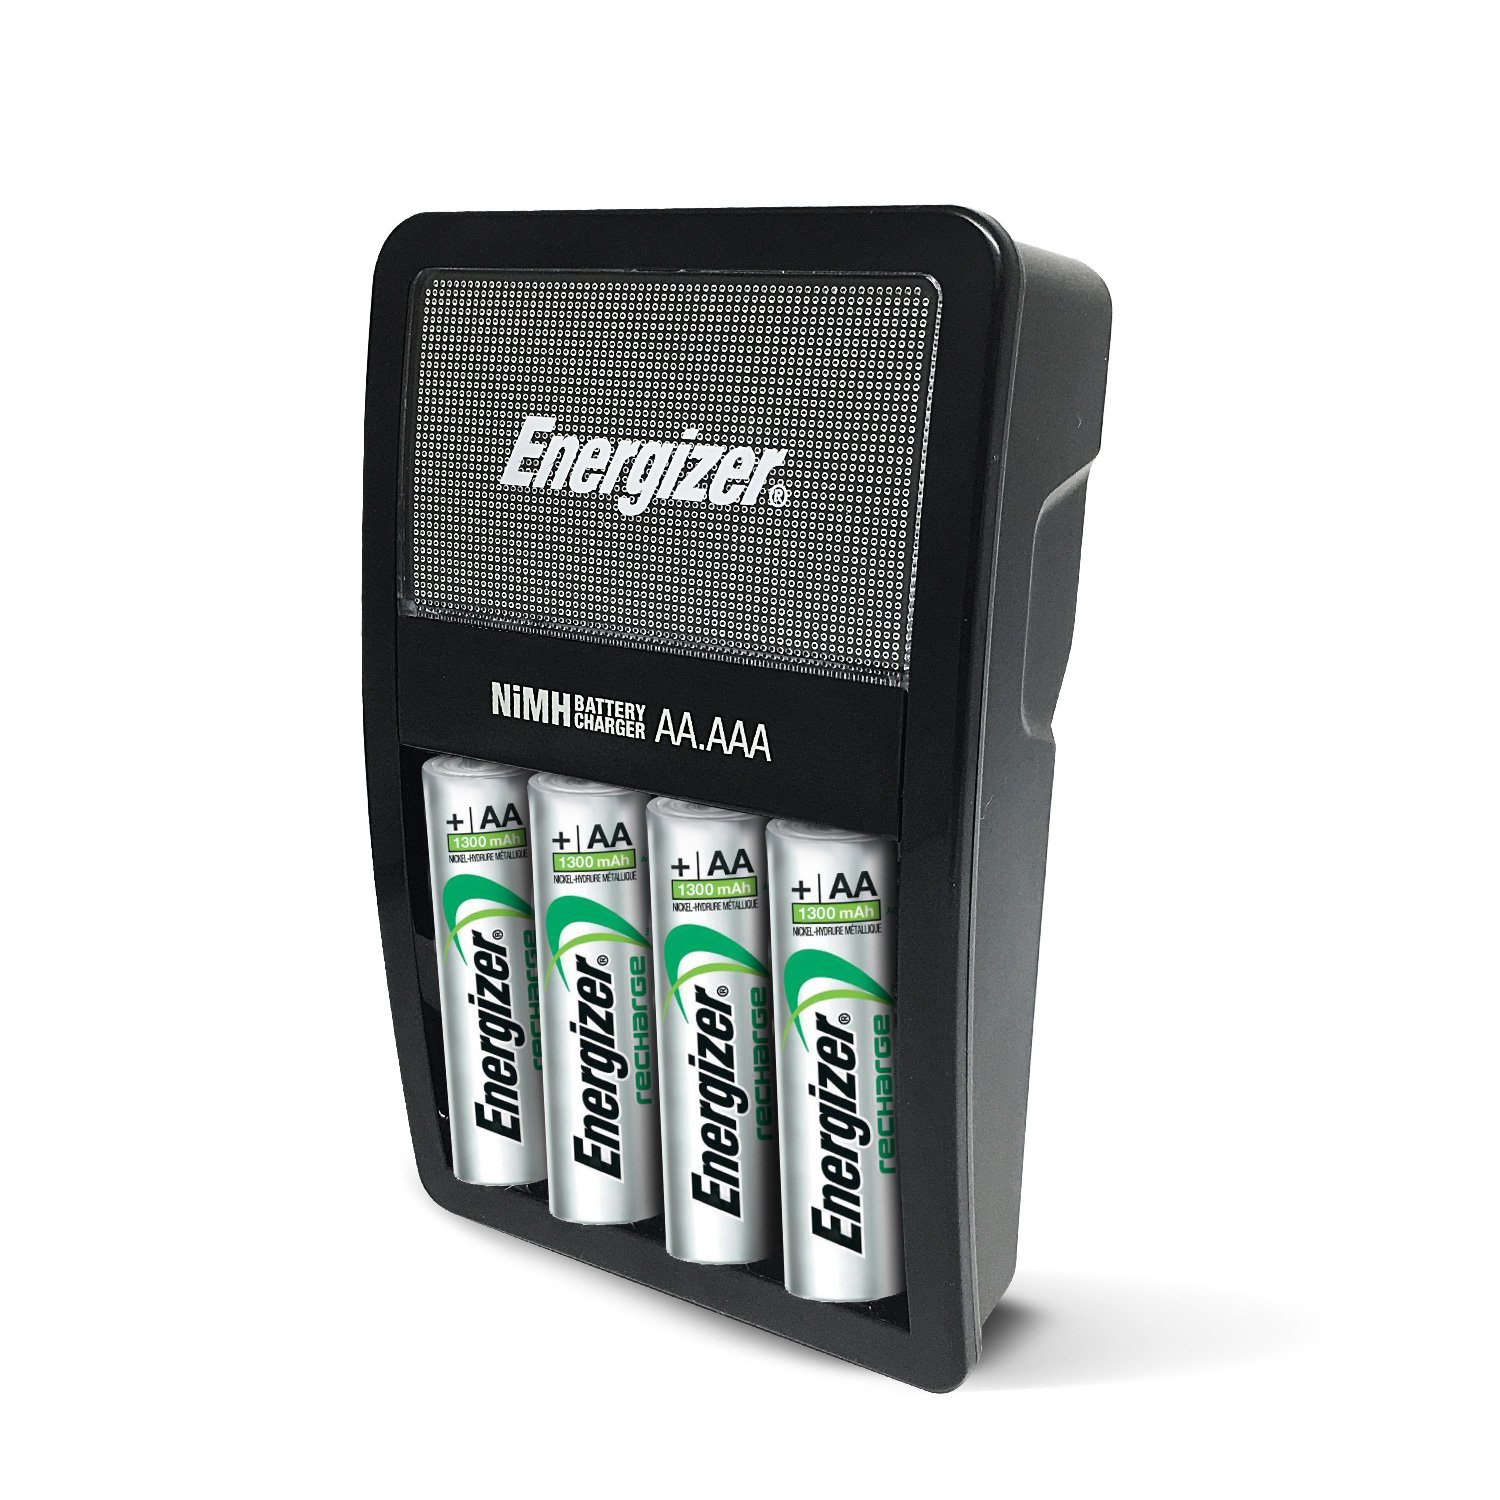 Details About Energizer Rechargeable Aa And Aaa Battery Charger Recharge Value With 4